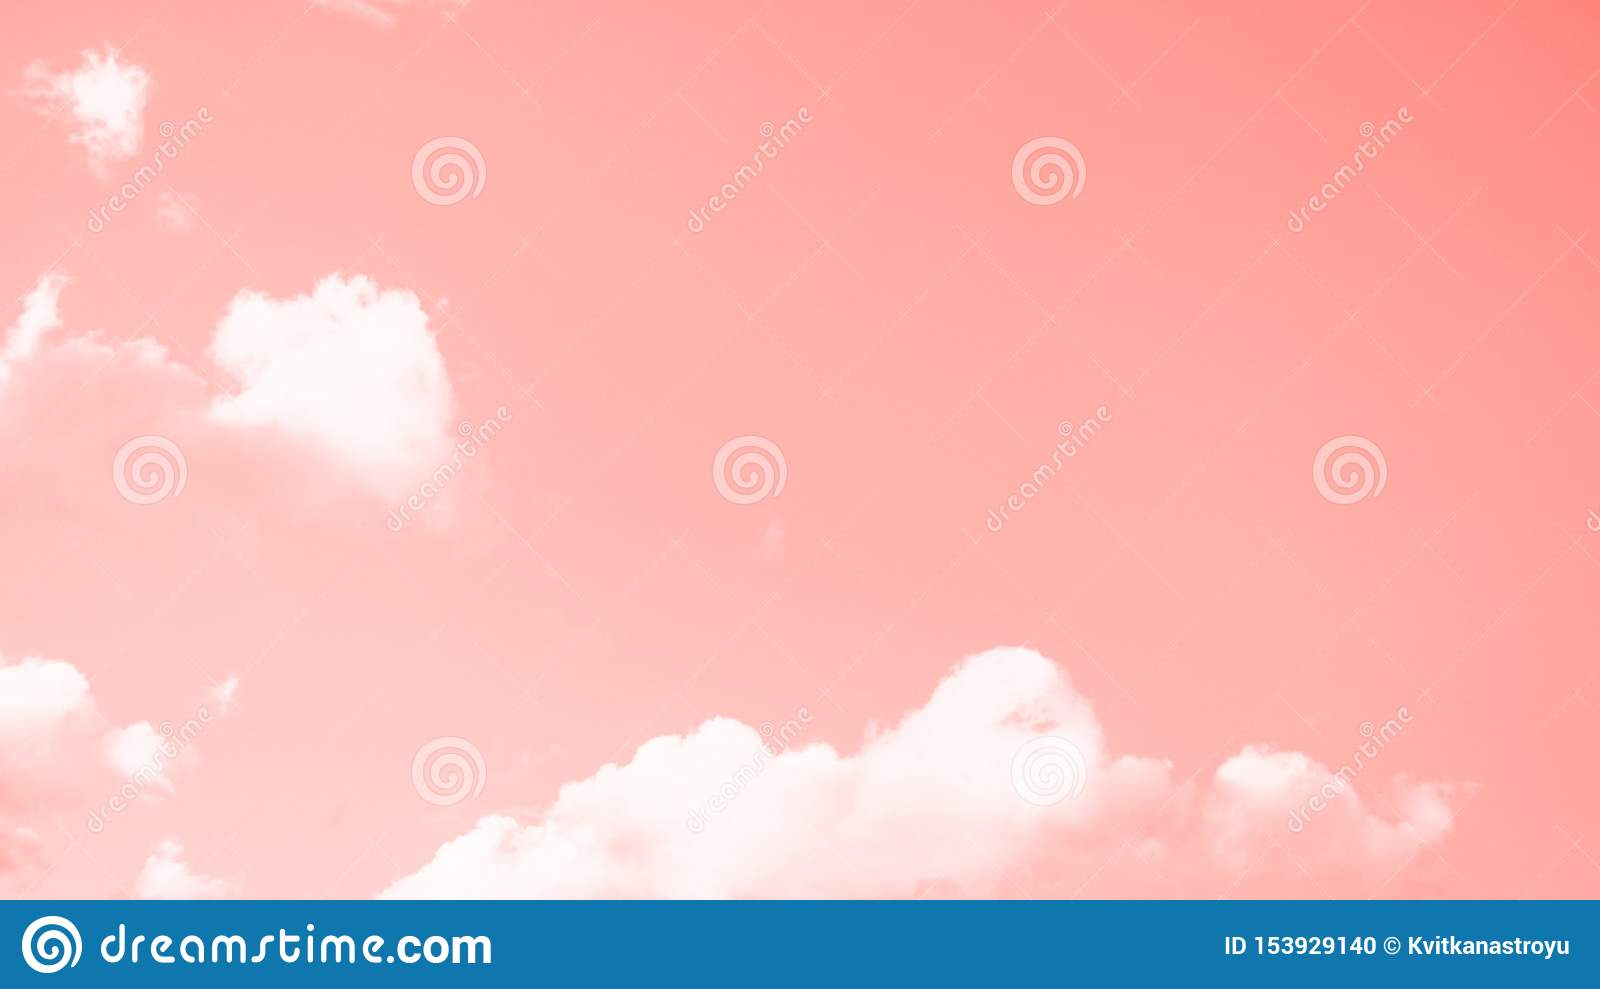 Coral color sky background with small white clouds. 16:9 panoramic format